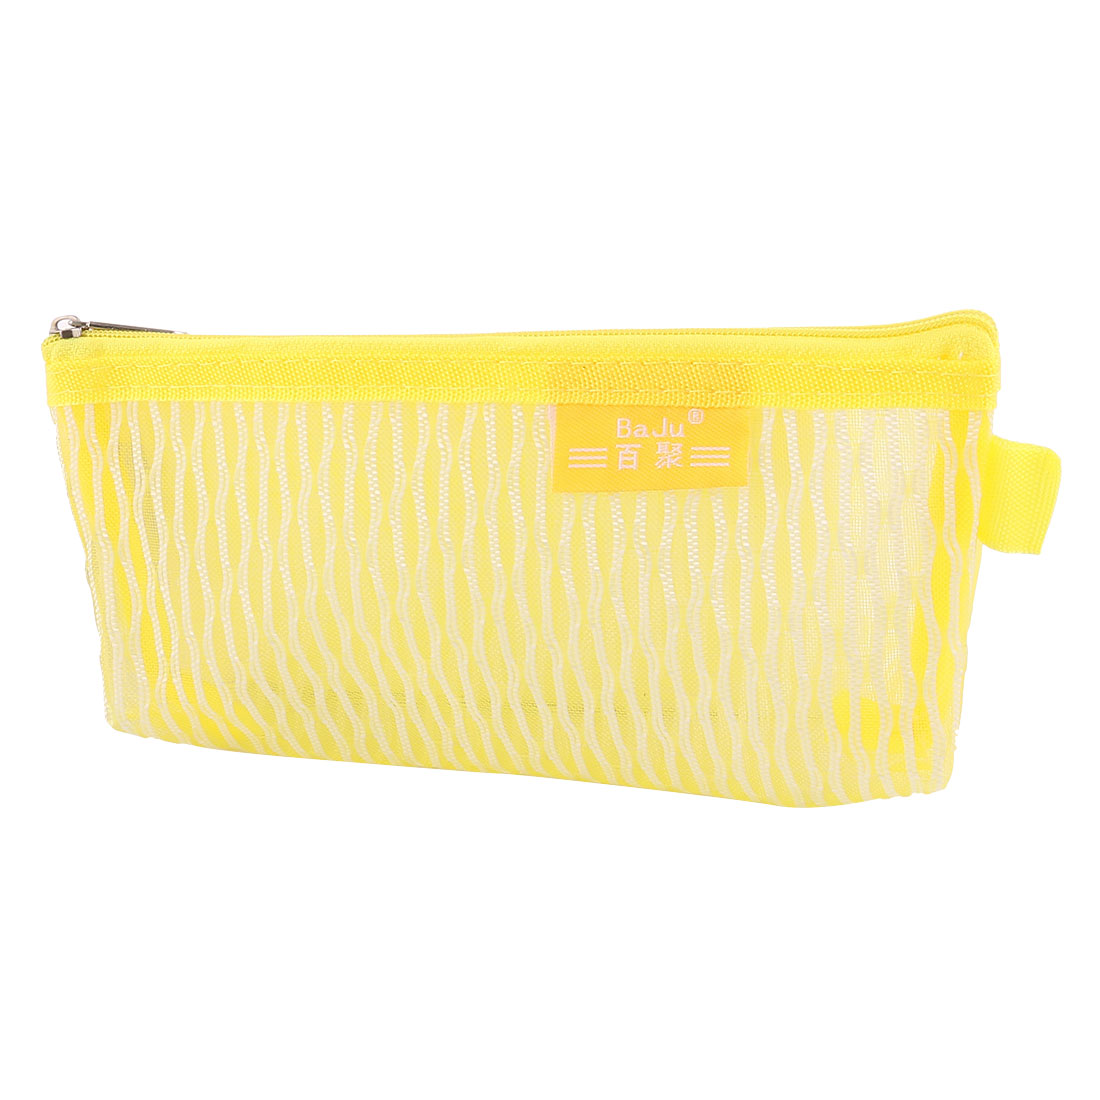 School Nylon Meshy Zippered Pen Pencil Bag Holder Pouch Yellow